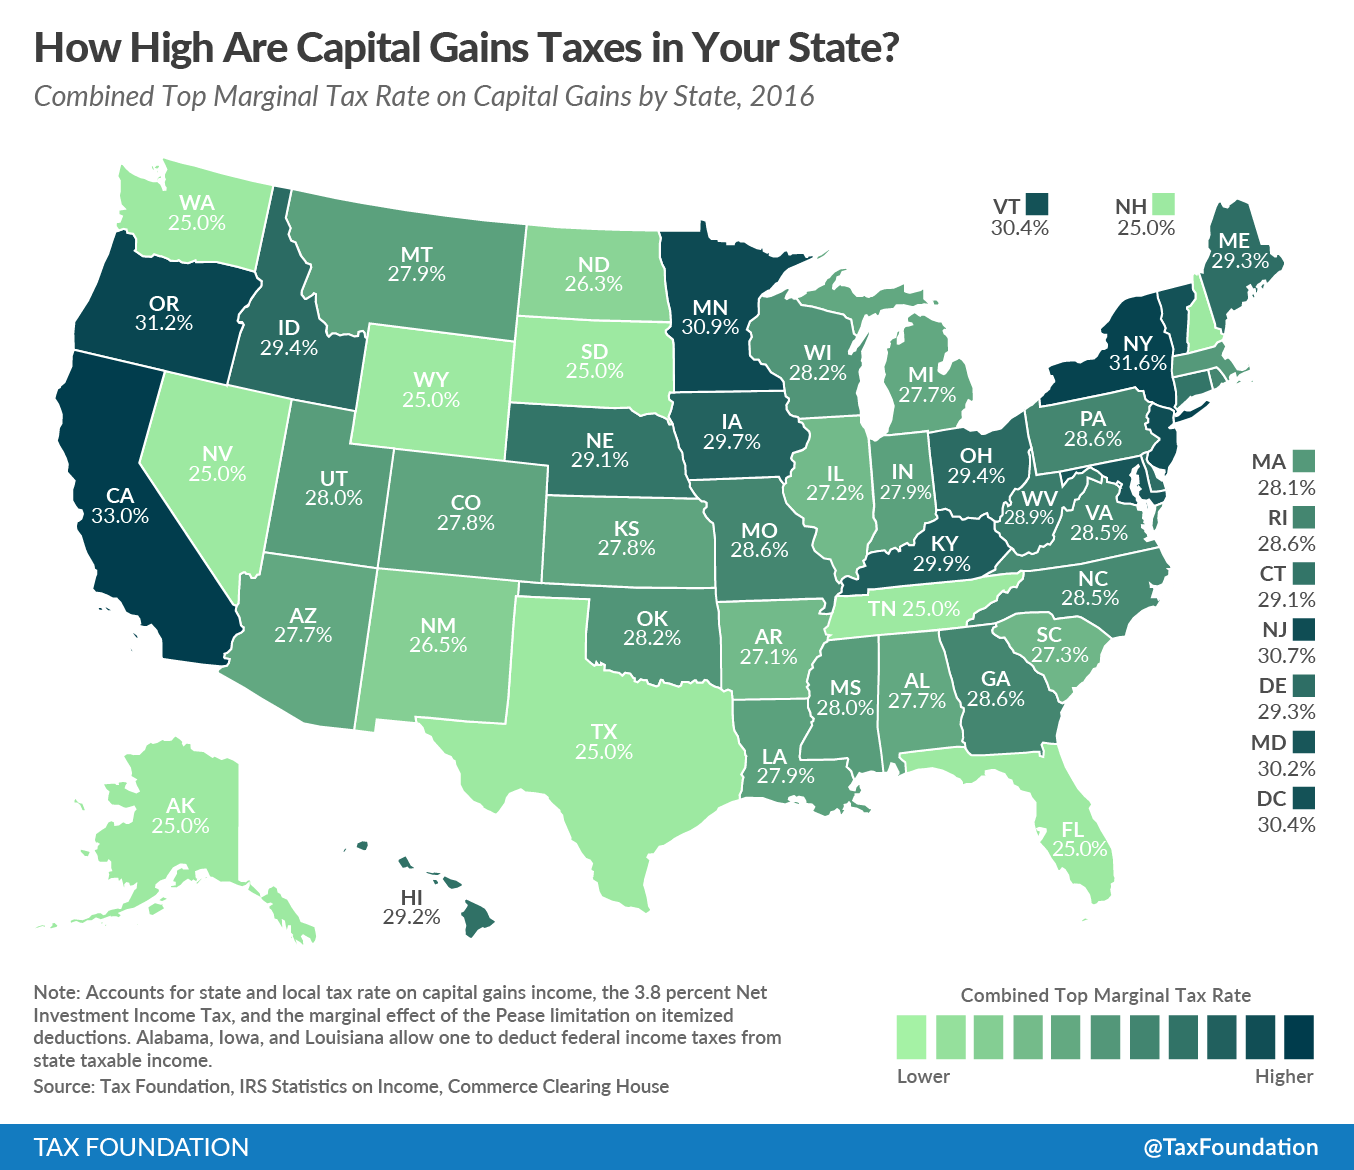 How High Are Capital Gains Taxes in Your State?